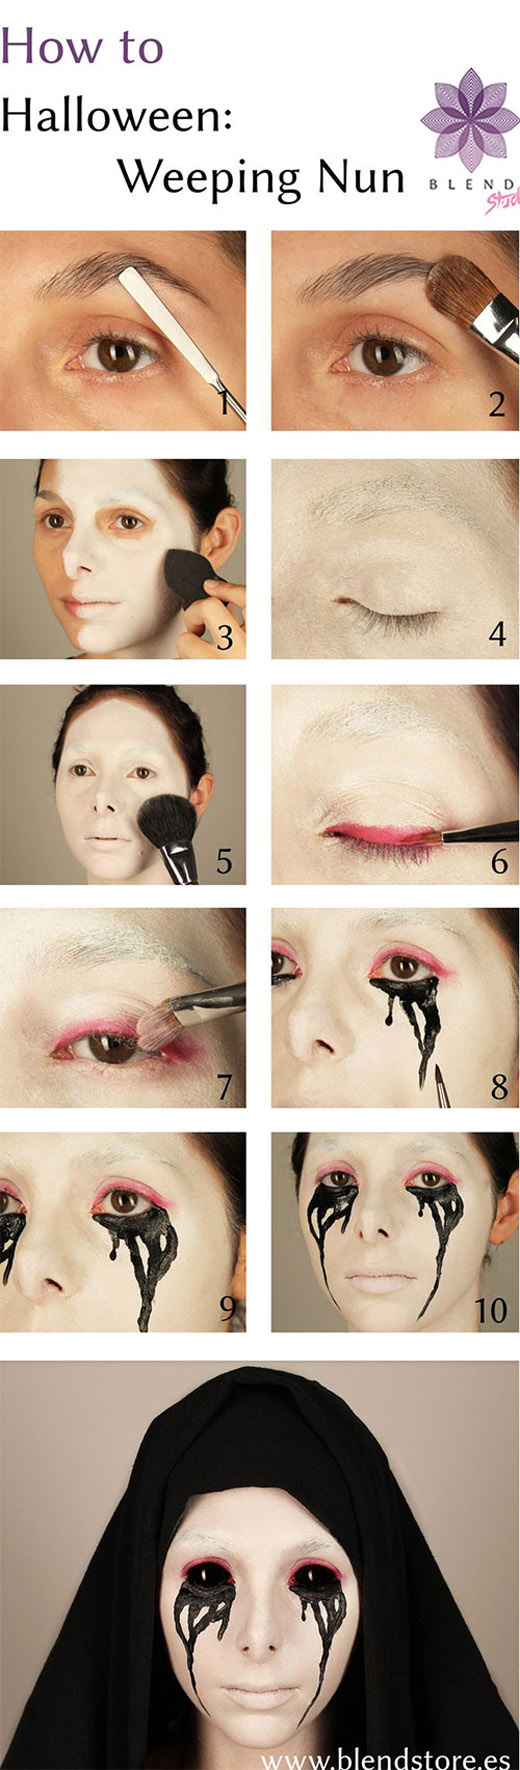 scary-halloween-makeup-step-by-step